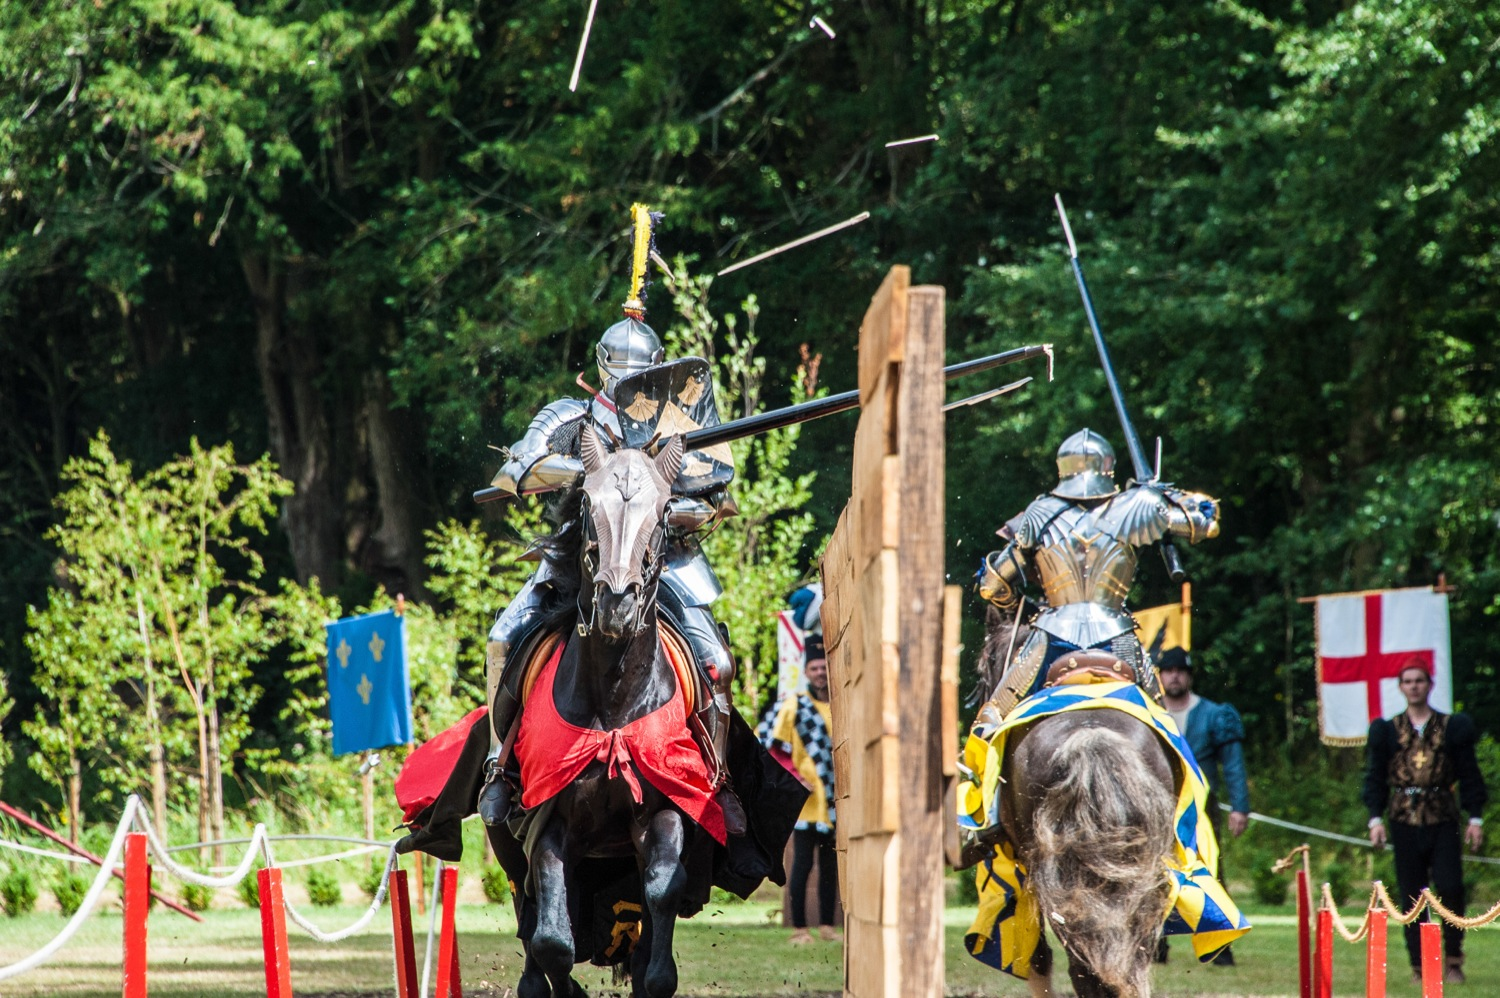 Sunday 28th July 2013 England win the Joust at the International tournament at Arundel Castle, Arundel, West Sussex, UK